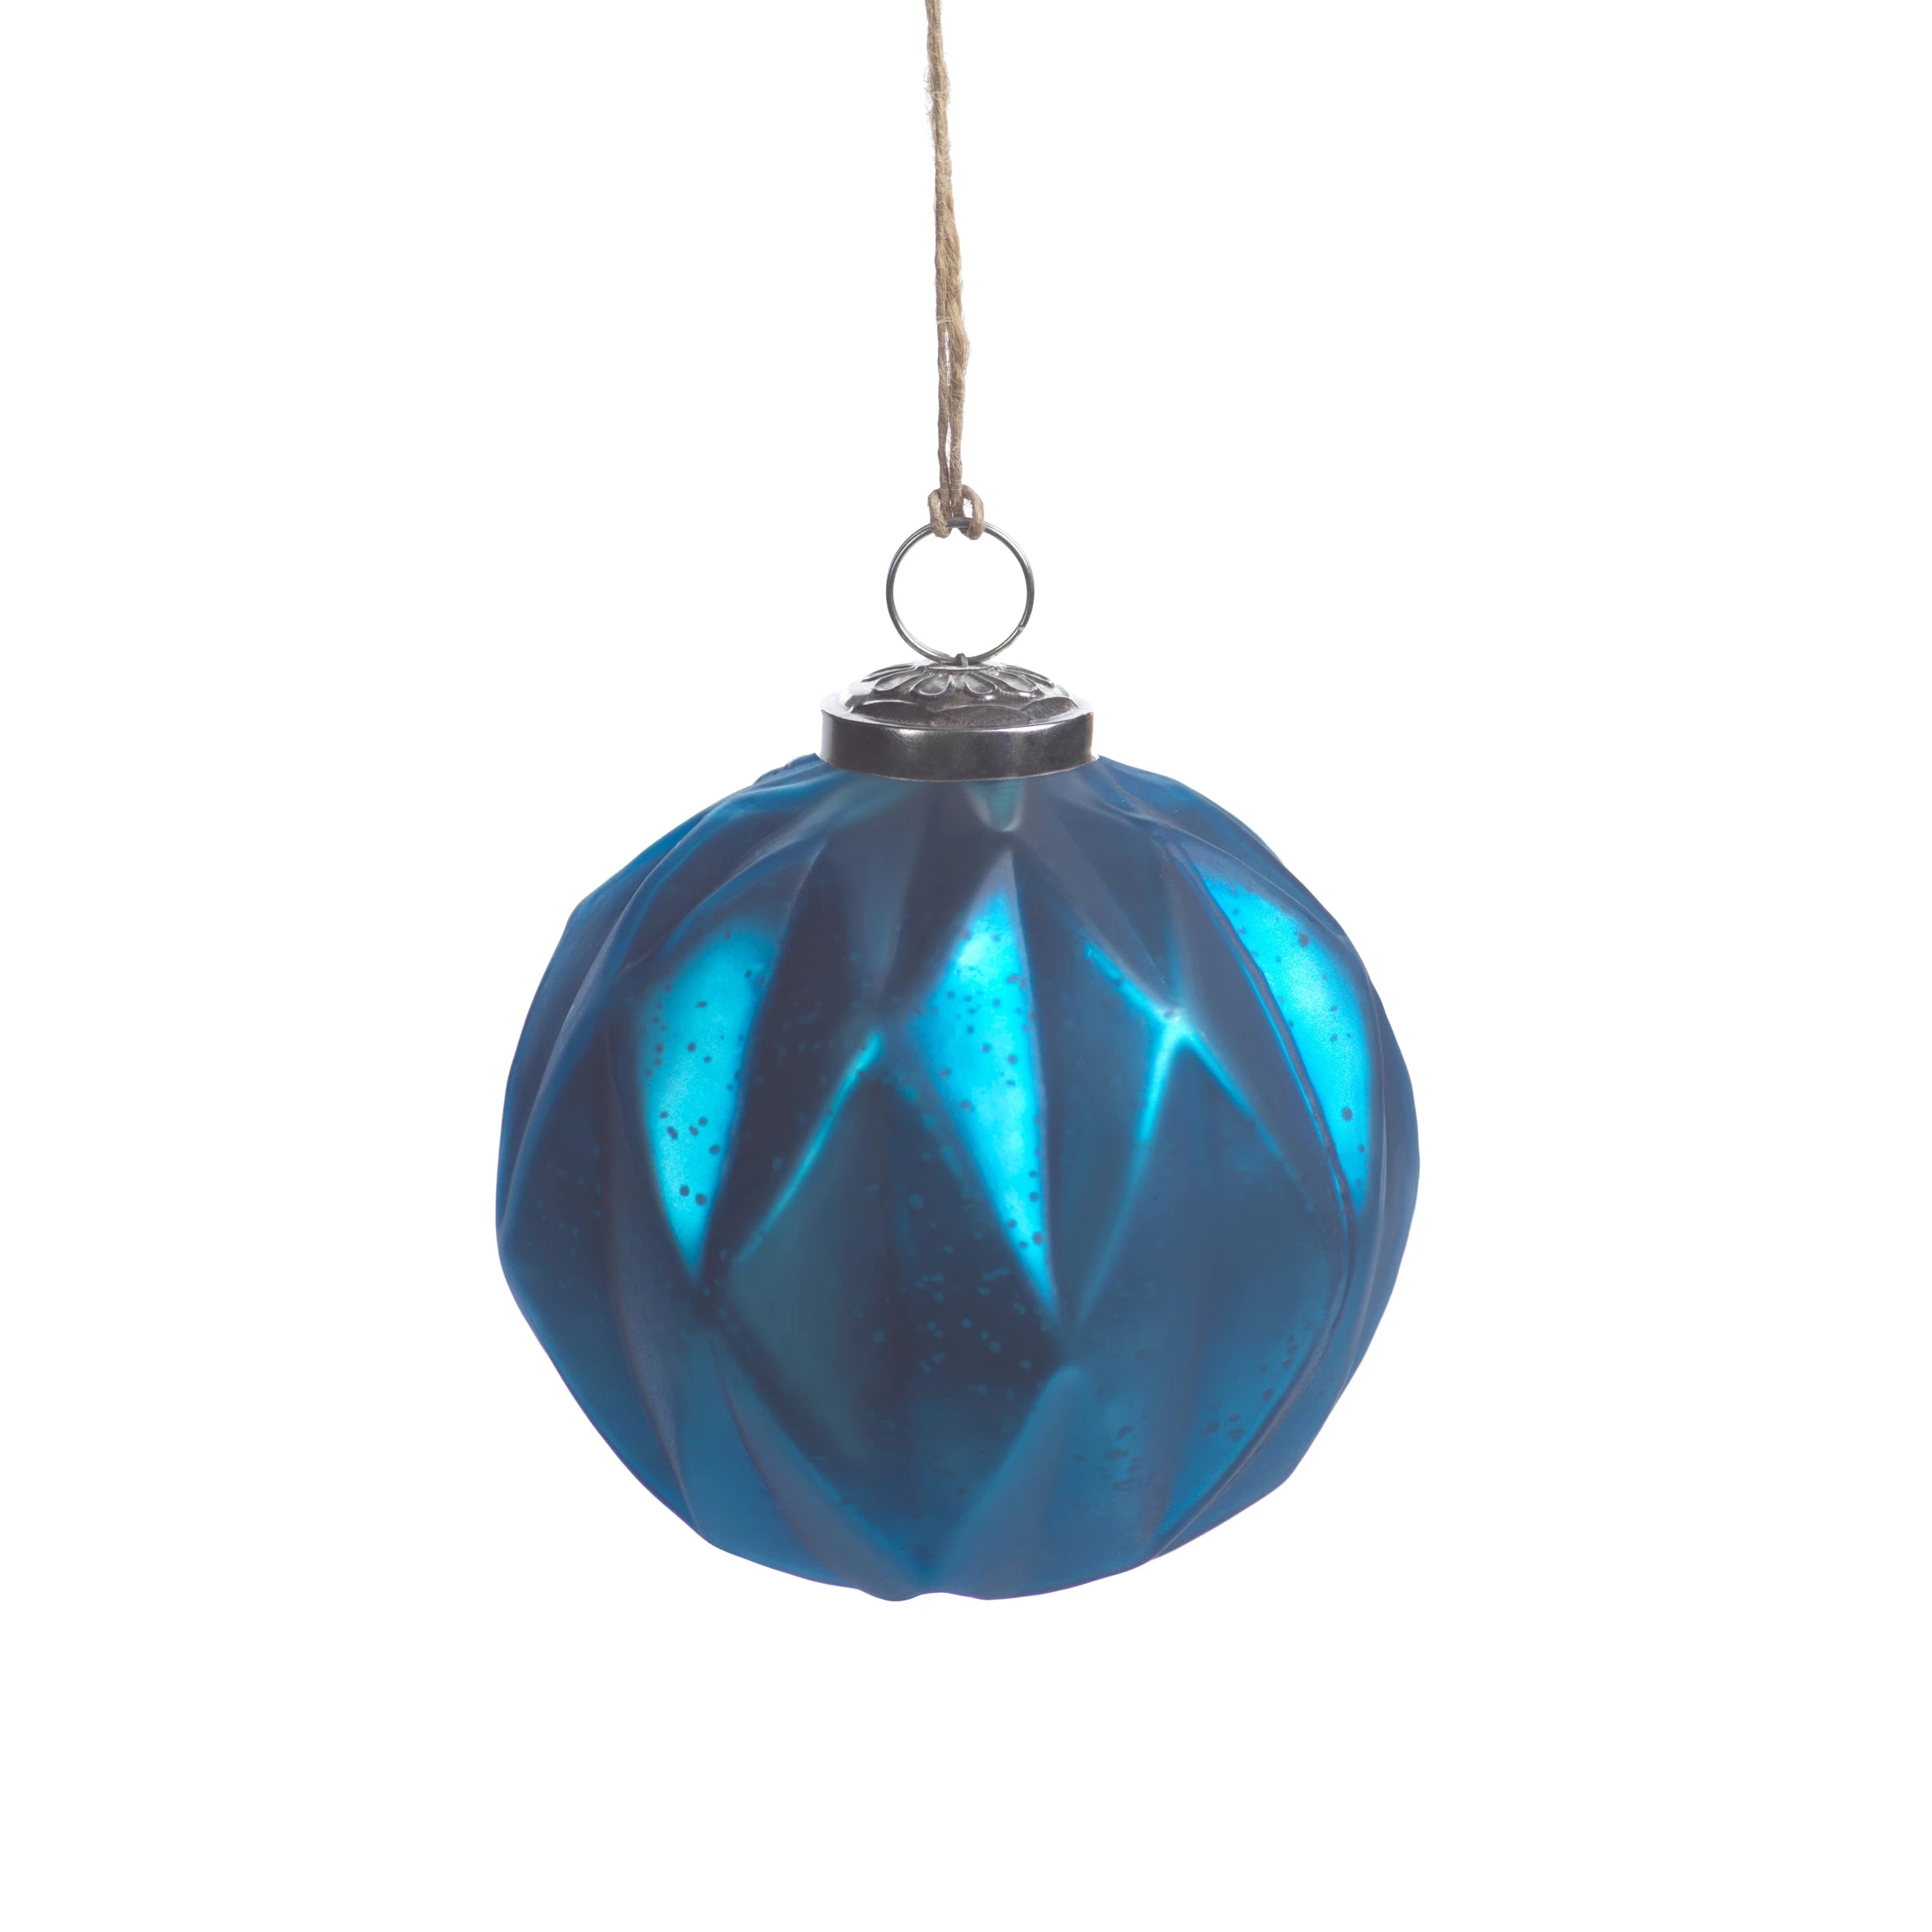 Faceted Glass Ornaments - Midnight Blue - CARLYLE AVENUE